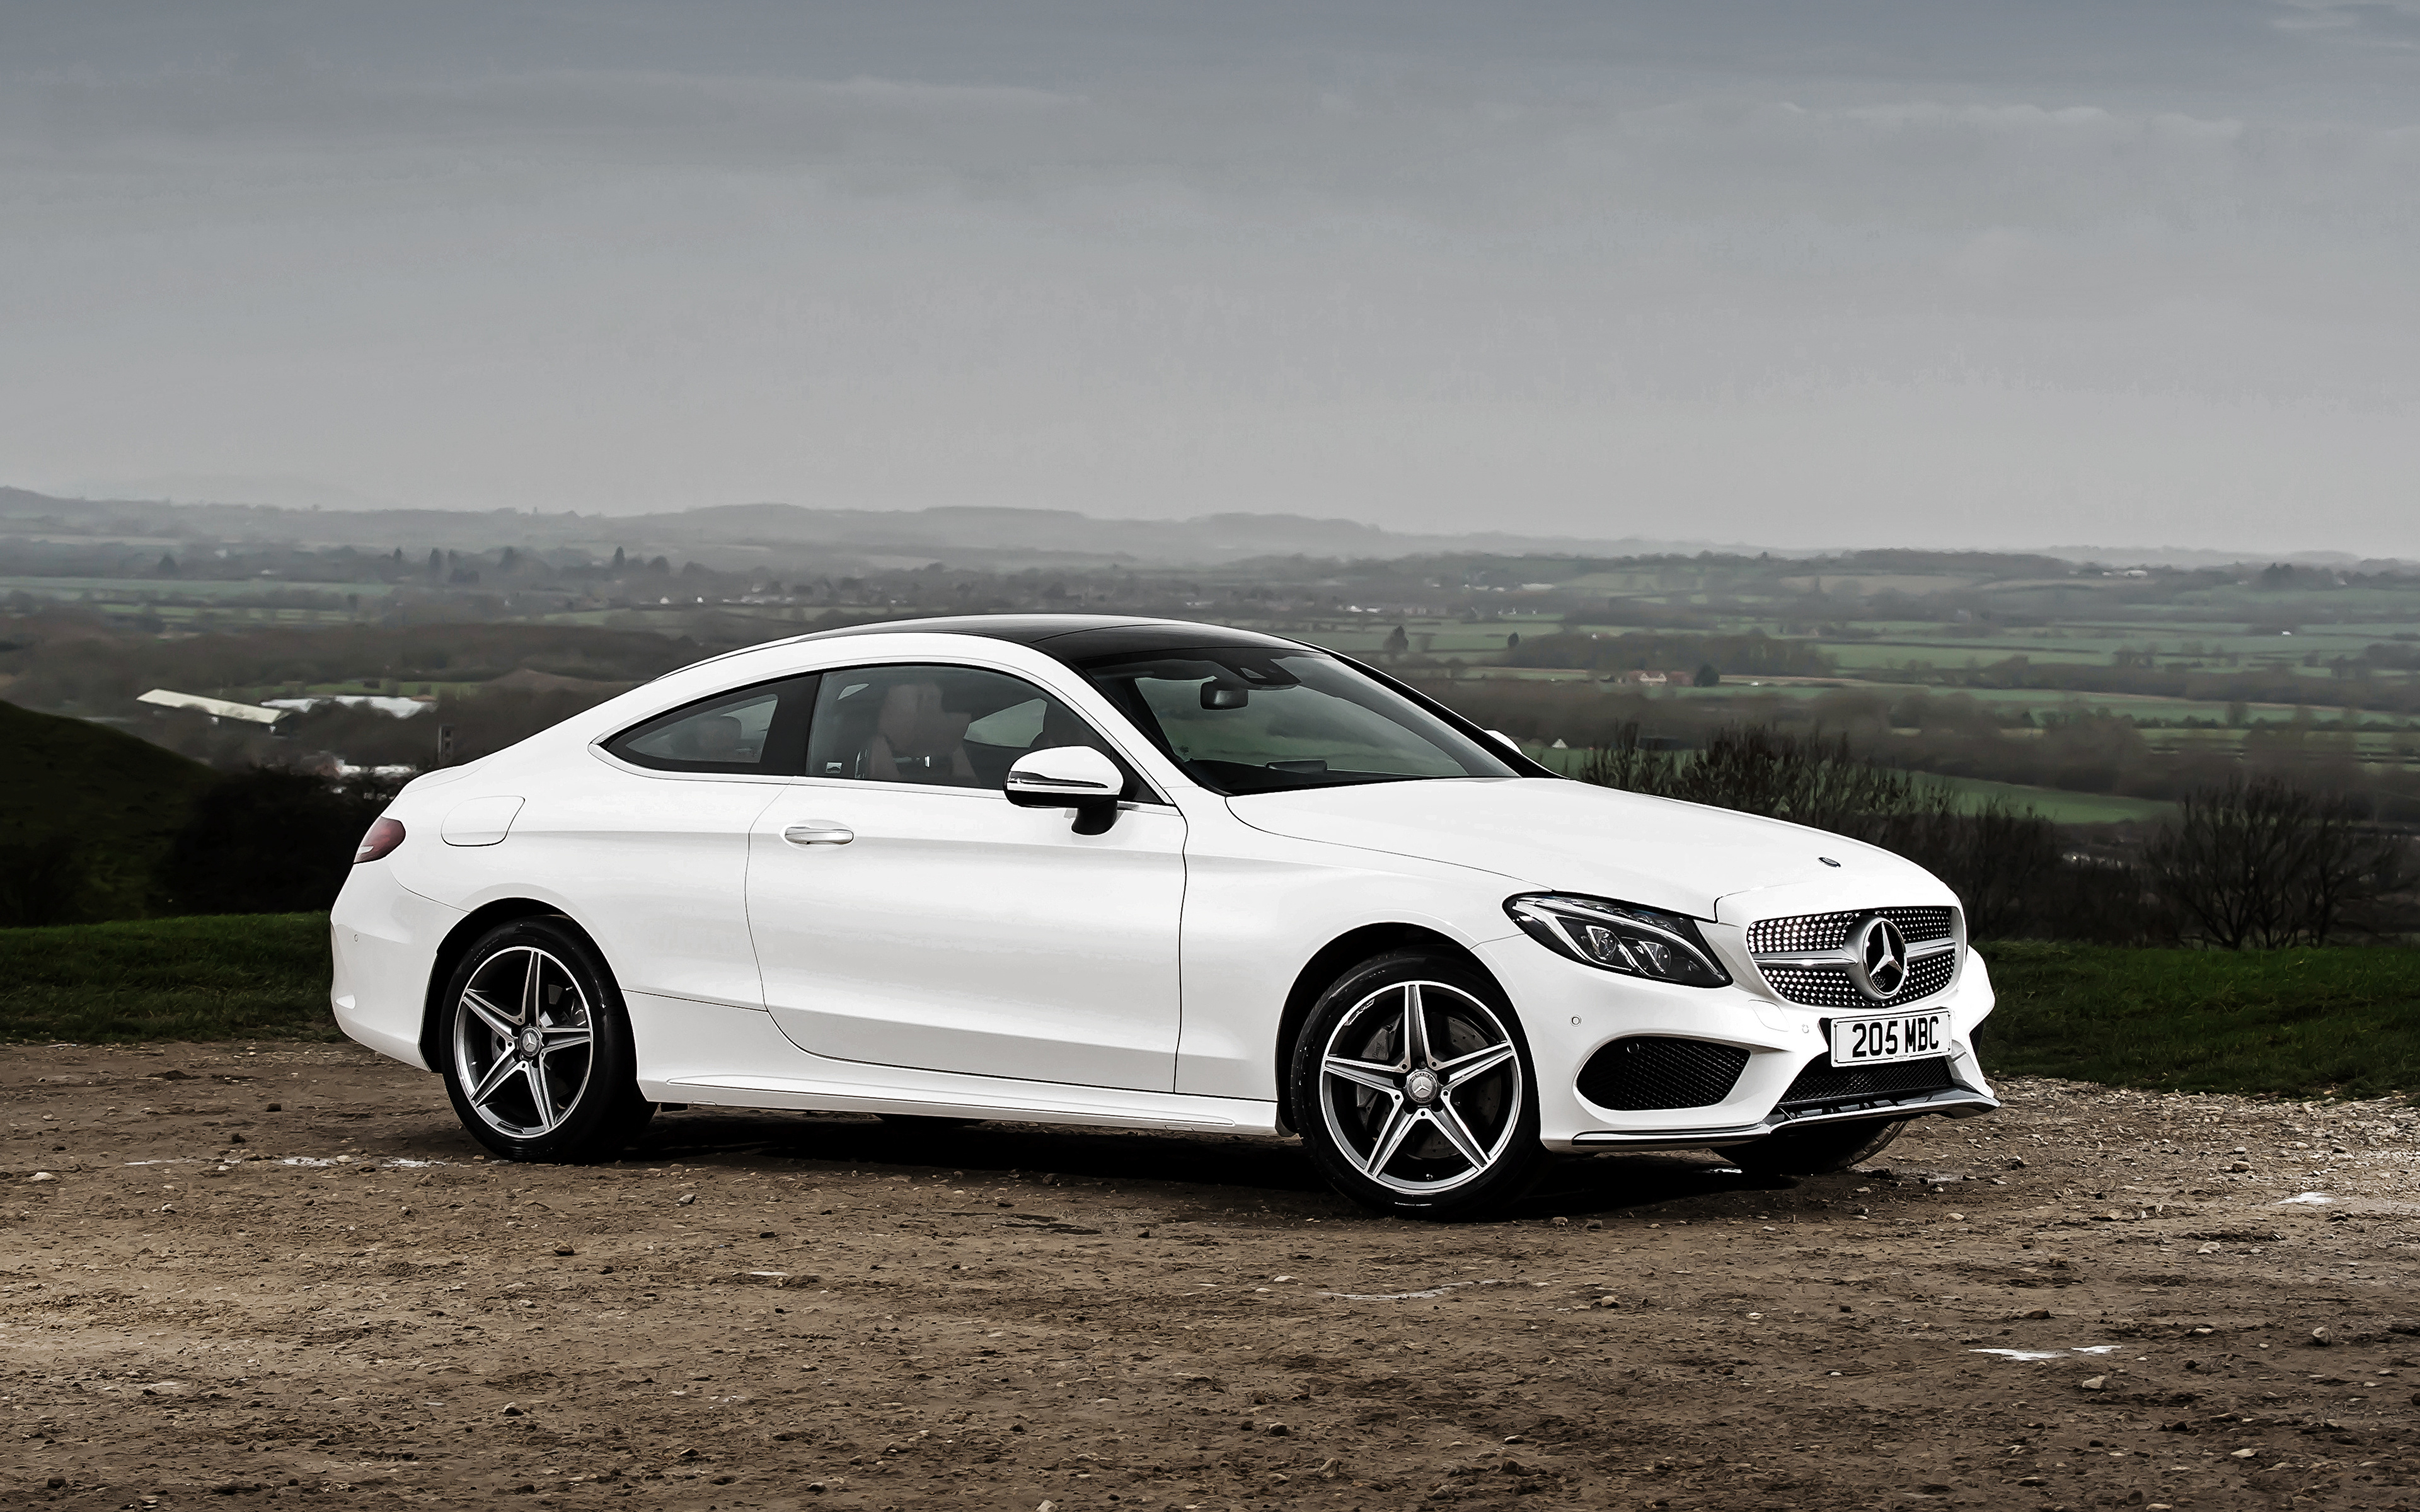 Picture Mercedes Benz Amg C Class C205 Coupe White Side 3840x2400